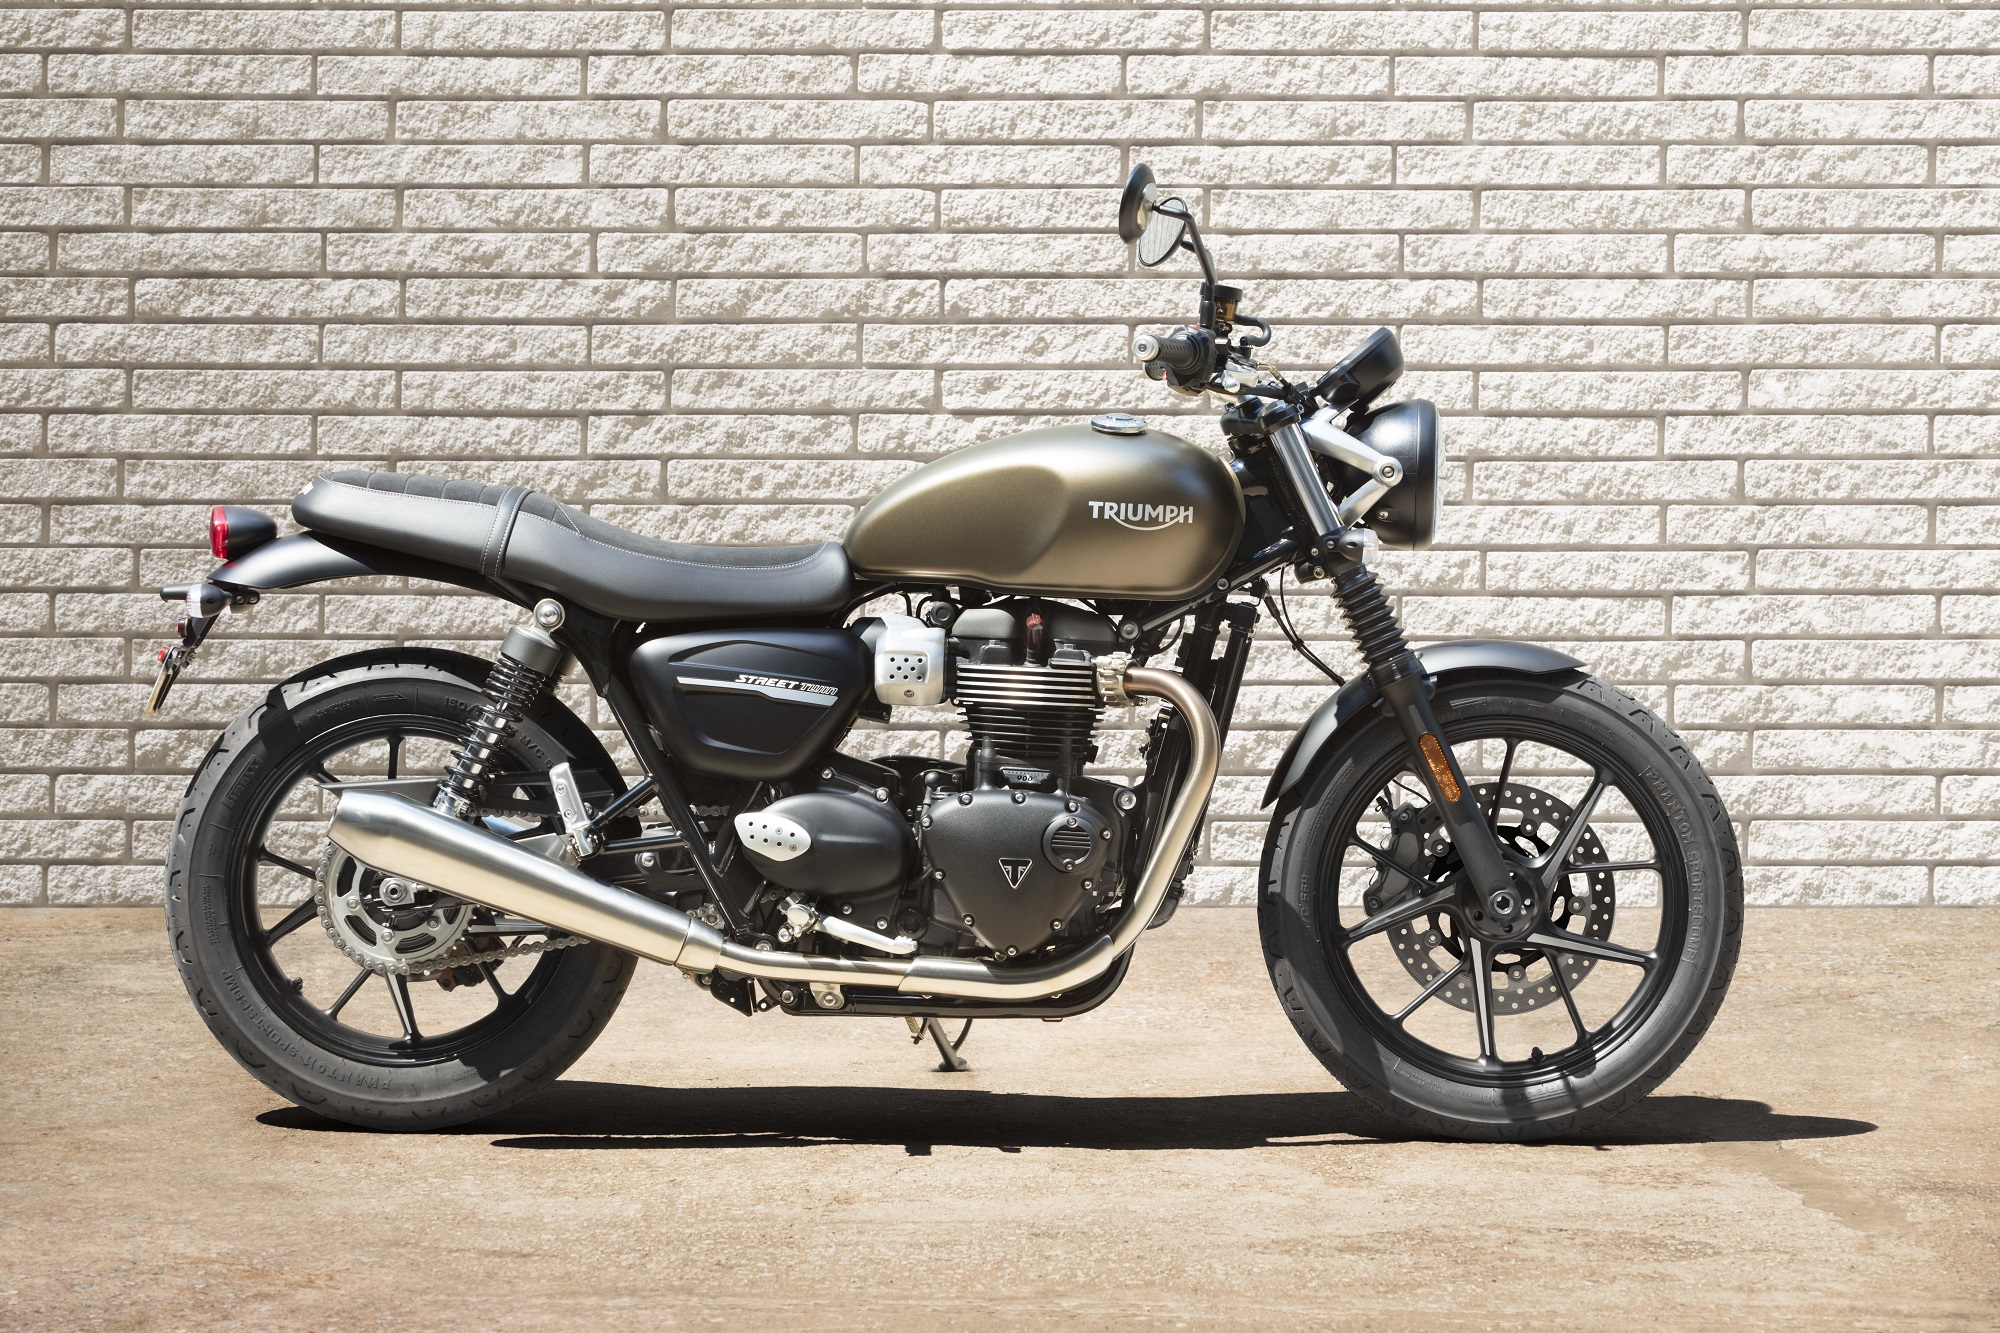 Triumph Motorcycles launches the all-new Street Twin & the new Street Scrambler